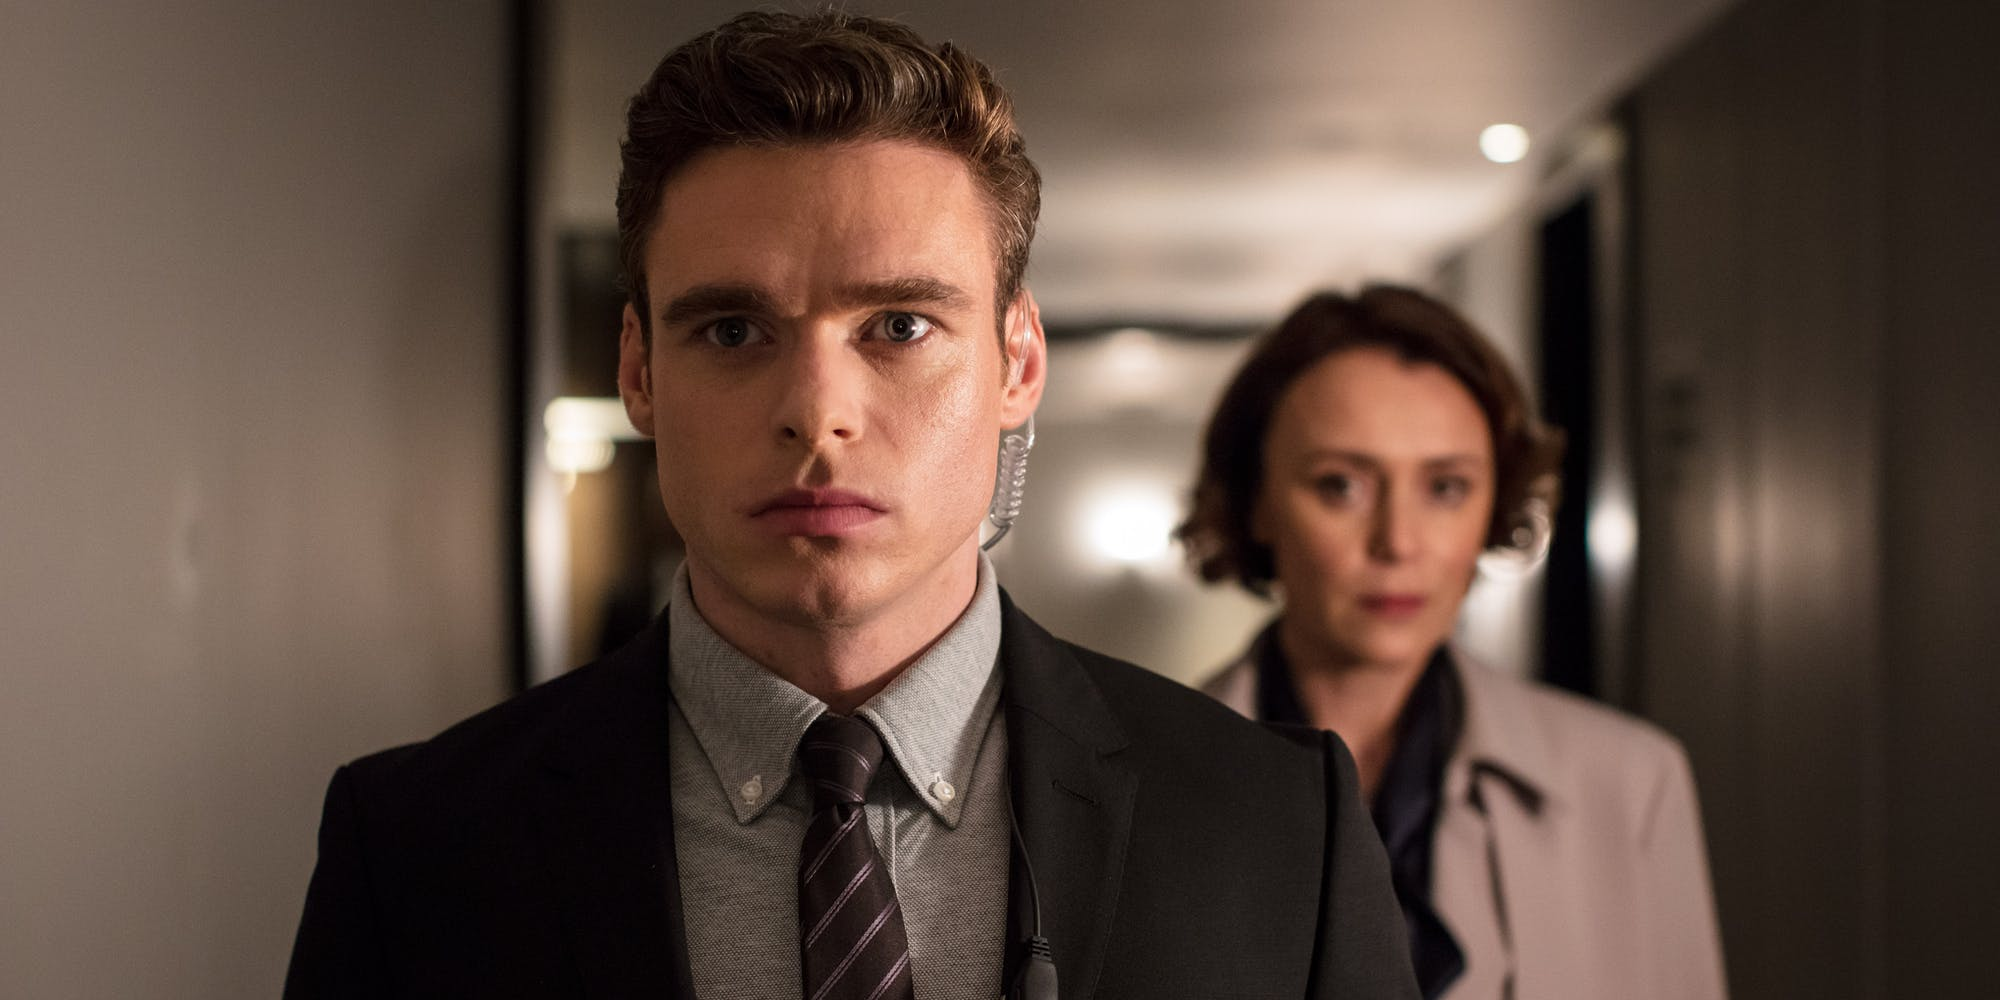 Richard-Madden-and-Keeley-Hawes-in-Bodyguard-Netflix